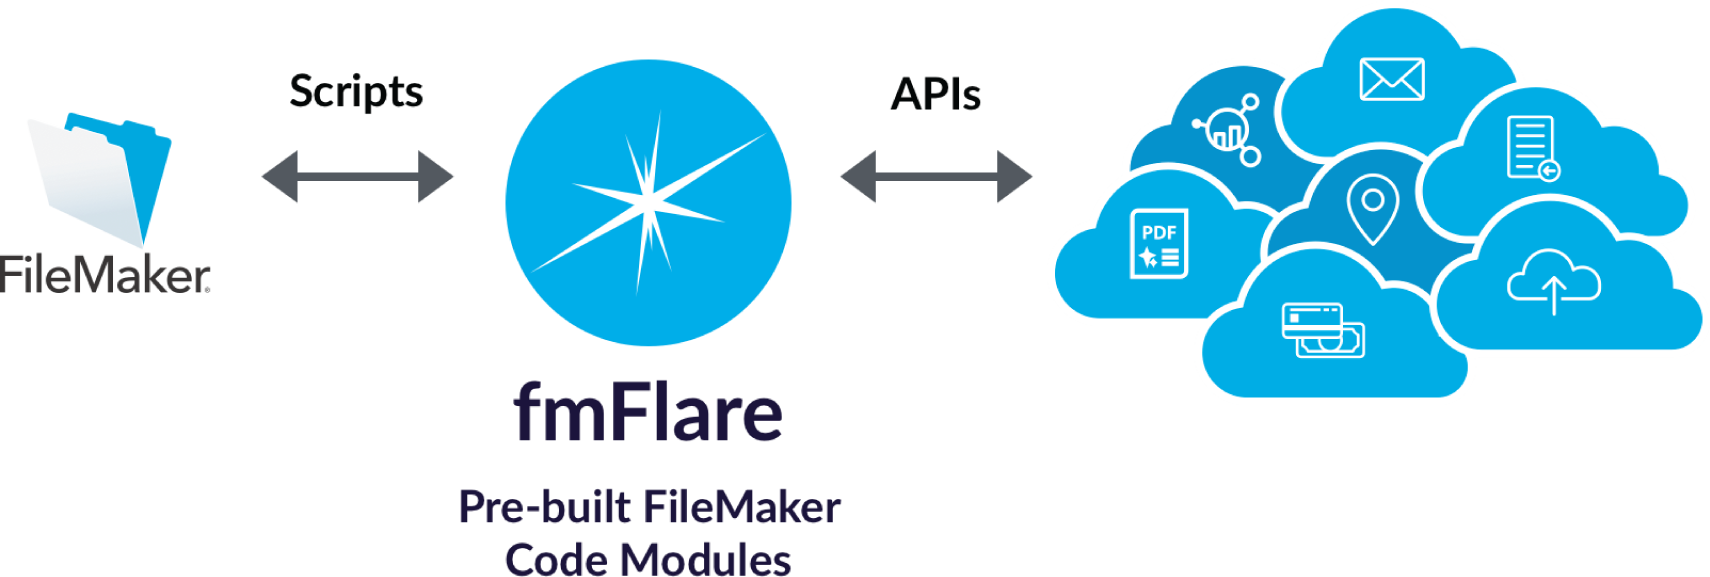 fmFlare View Diagram